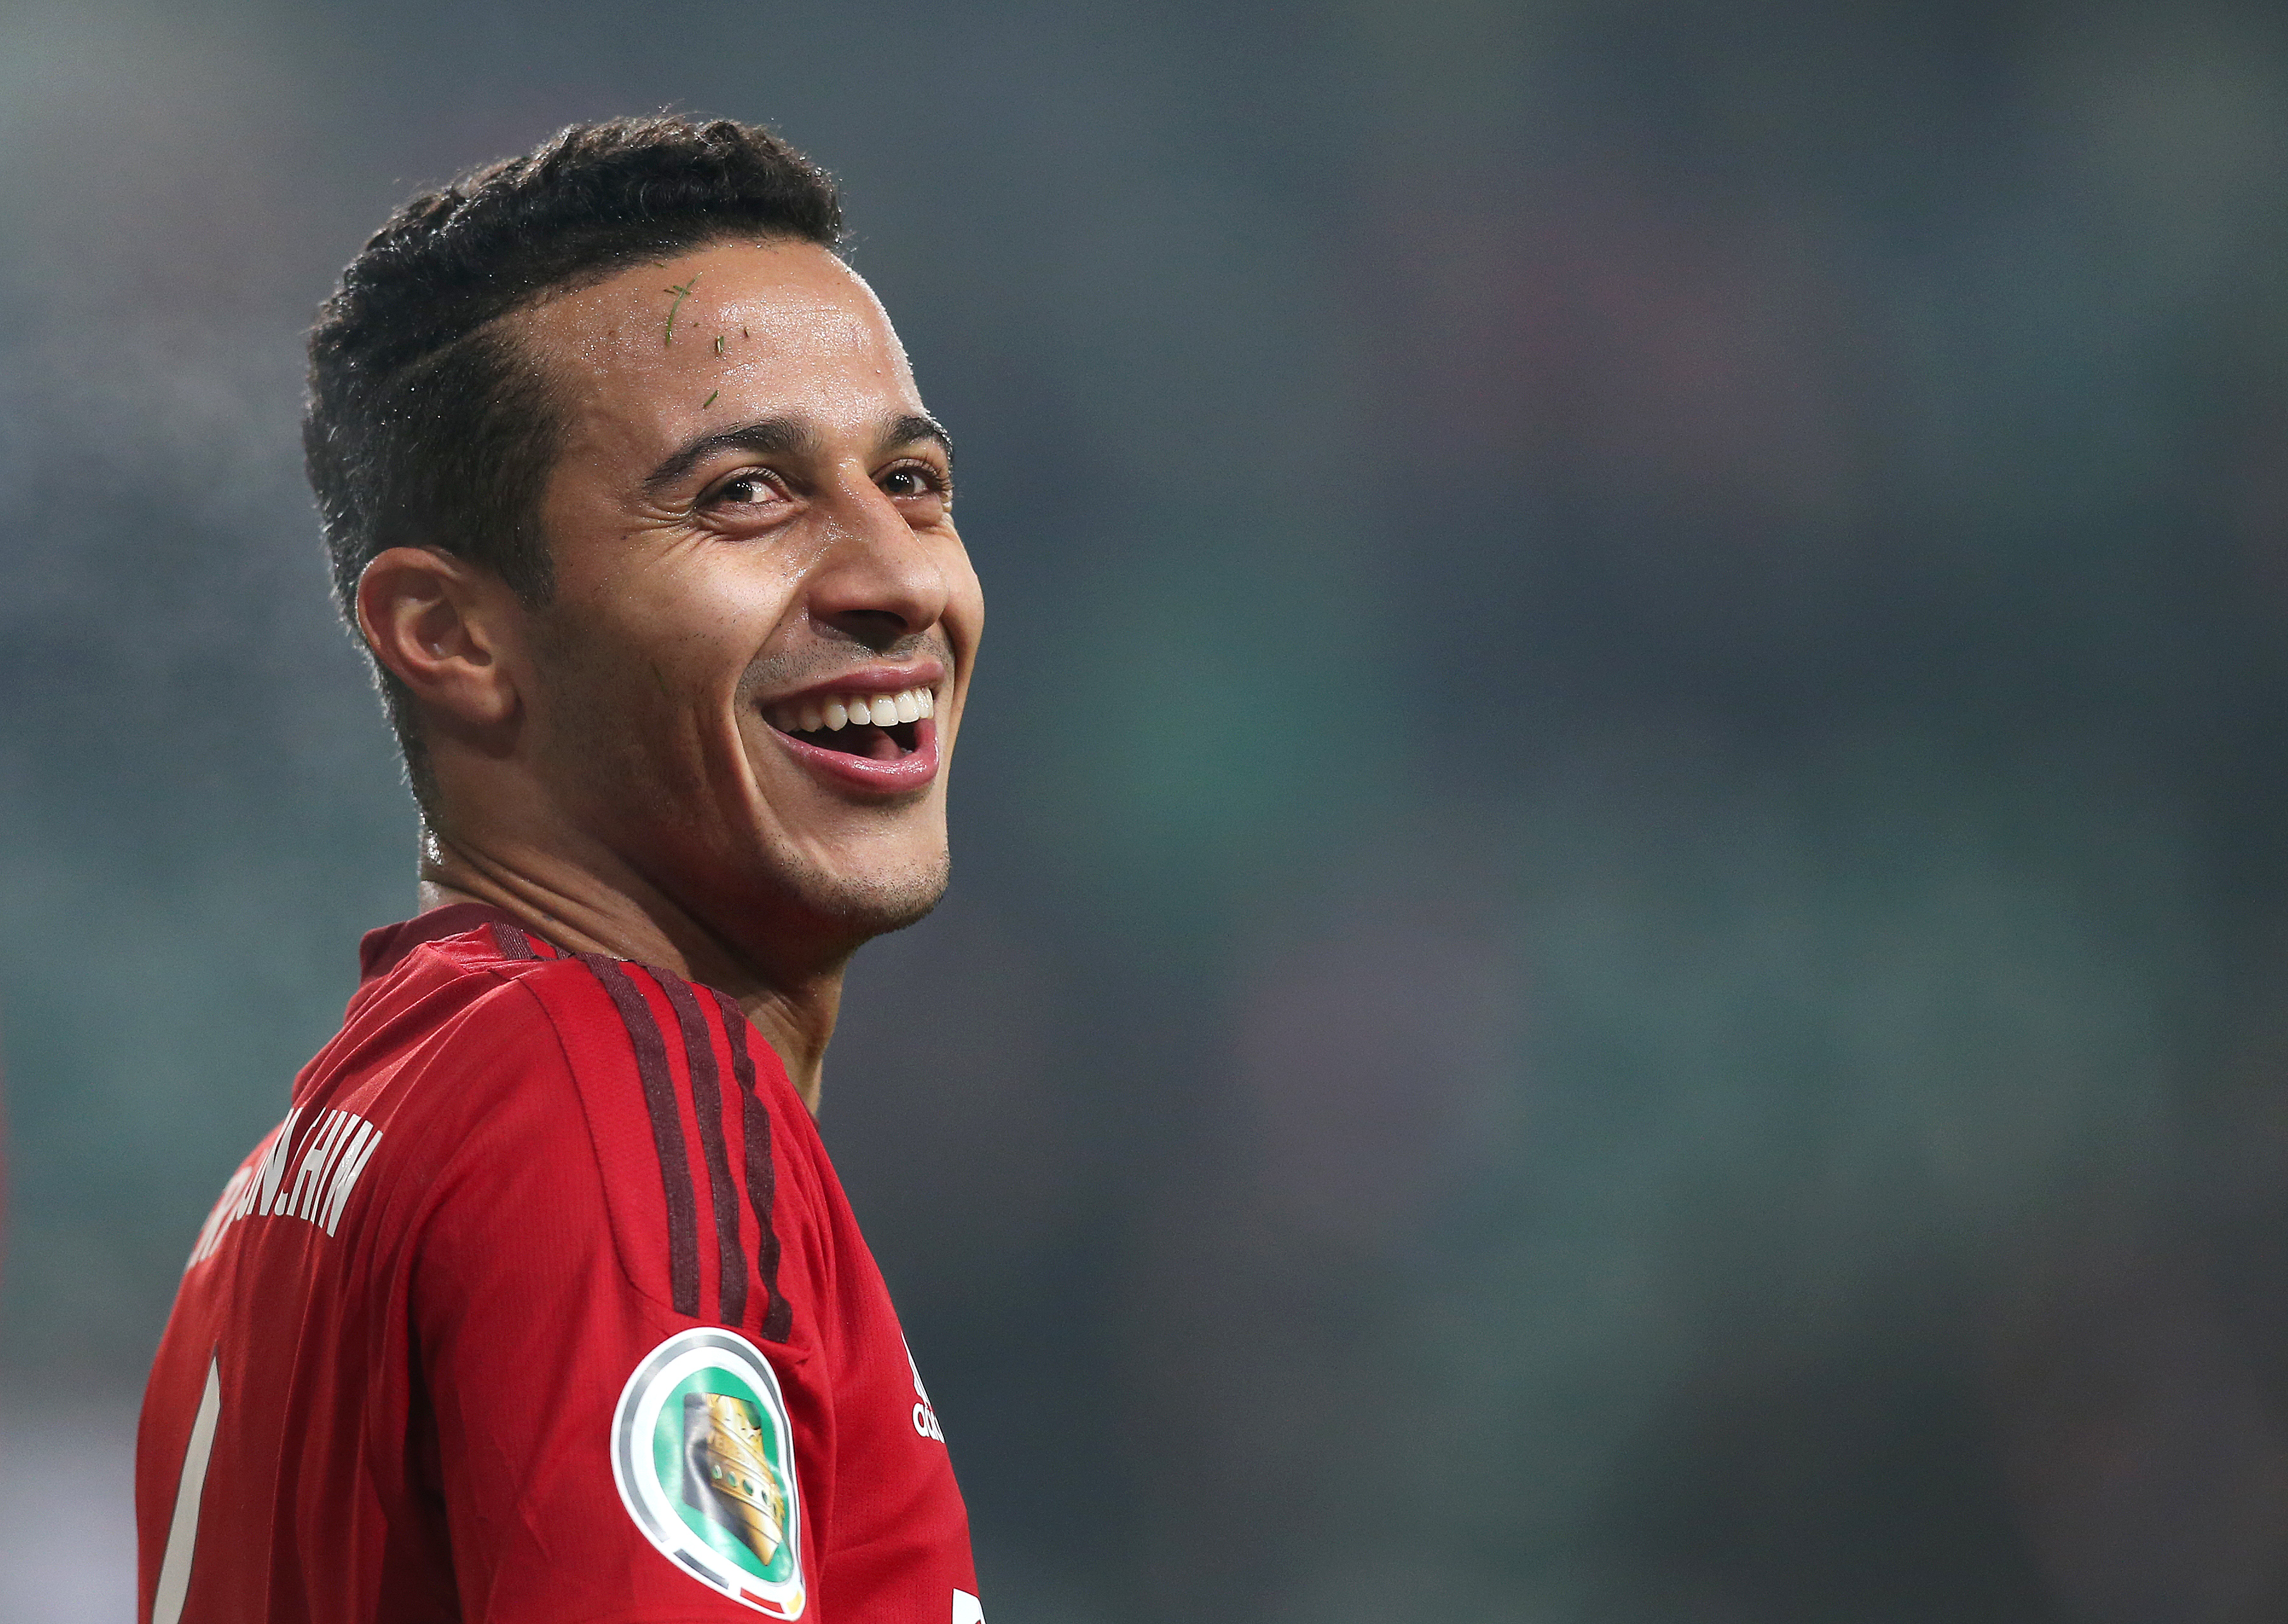 Liverpool tried to sign Thiago Alcantara, according to Brendan Rodgers